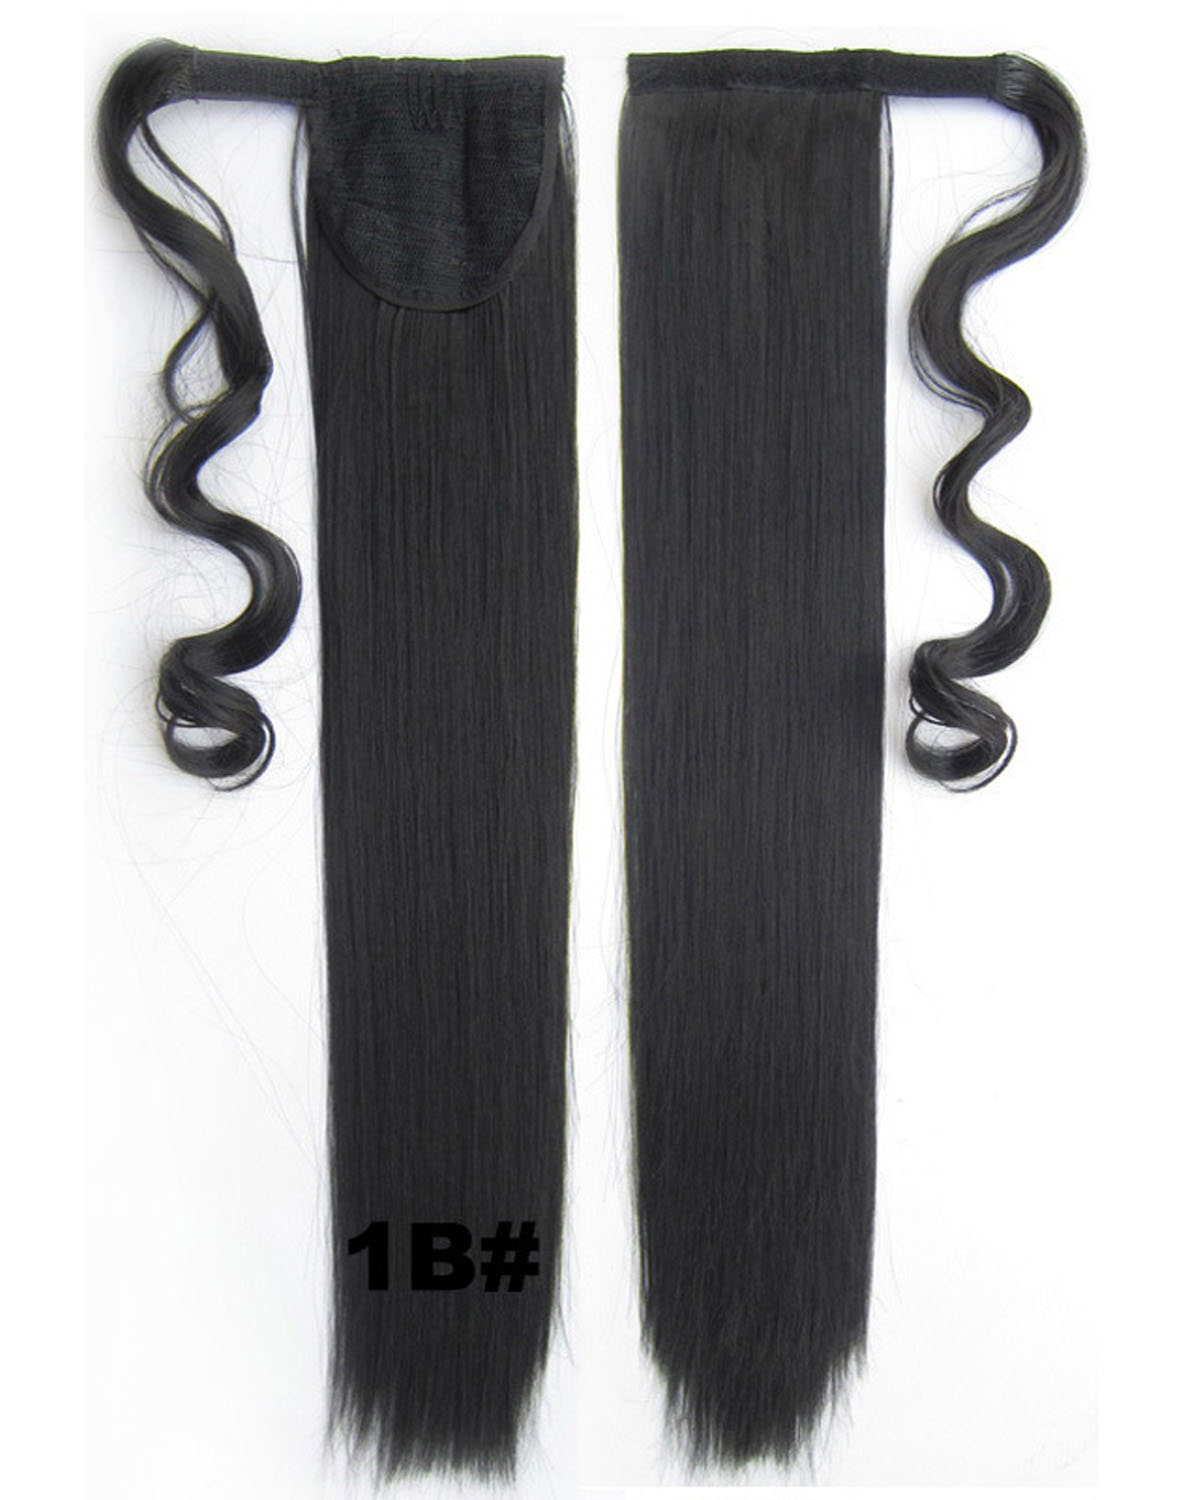 22 Inch Lady Perfect Curly and Long Wrap Around Synthetic Hair Ponytail 1B# 90g 55cm